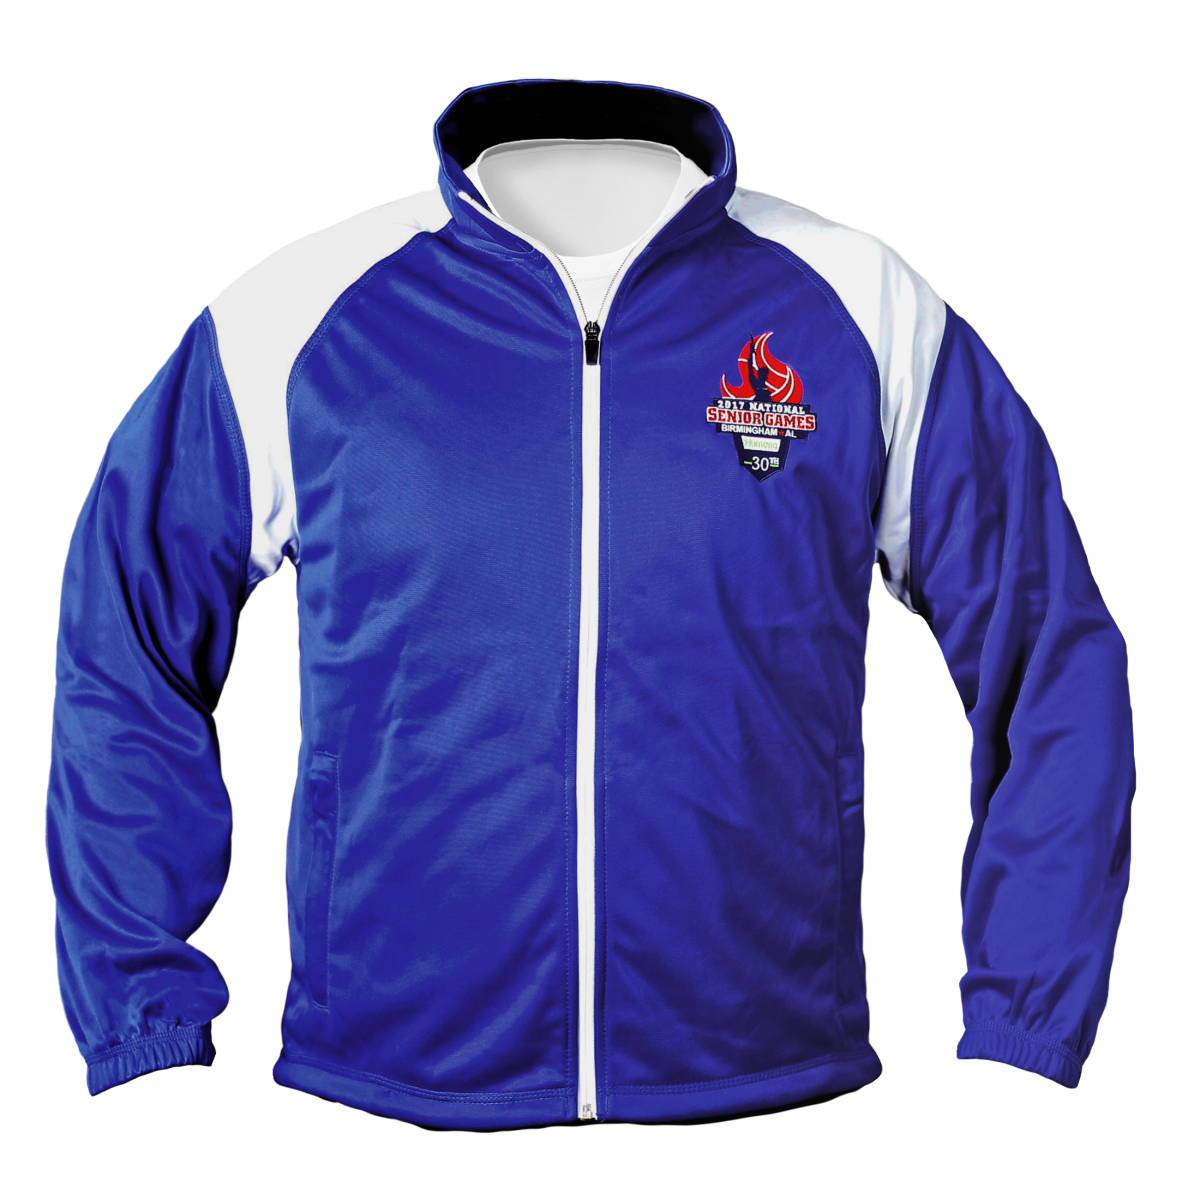 NSGA Embroidered Jacket